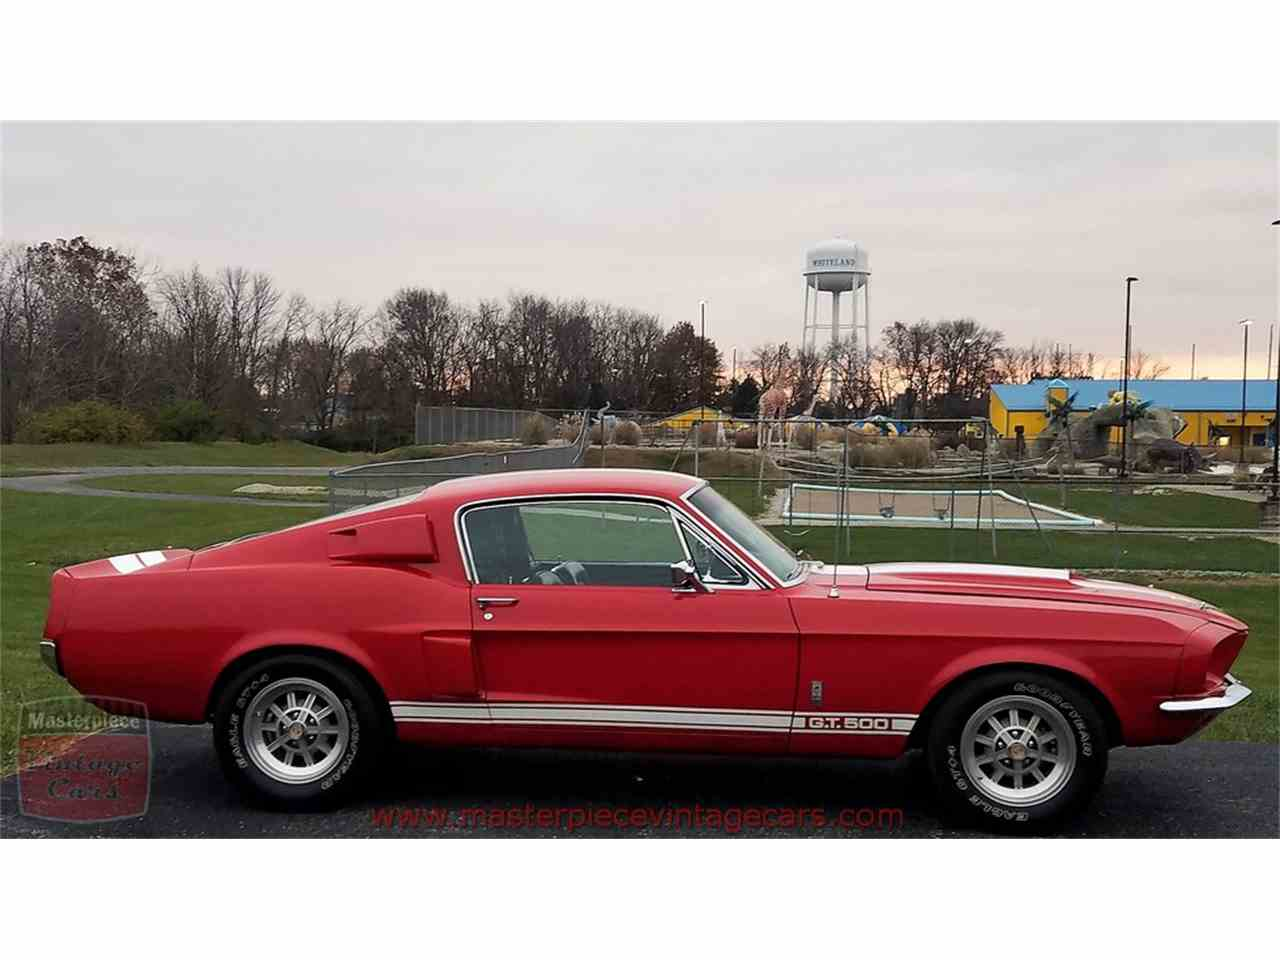 Large Picture of 1967 Shelby GT500 located in Whiteland Indiana - $299,900.00 Offered by Masterpiece Vintage Cars - MFLG